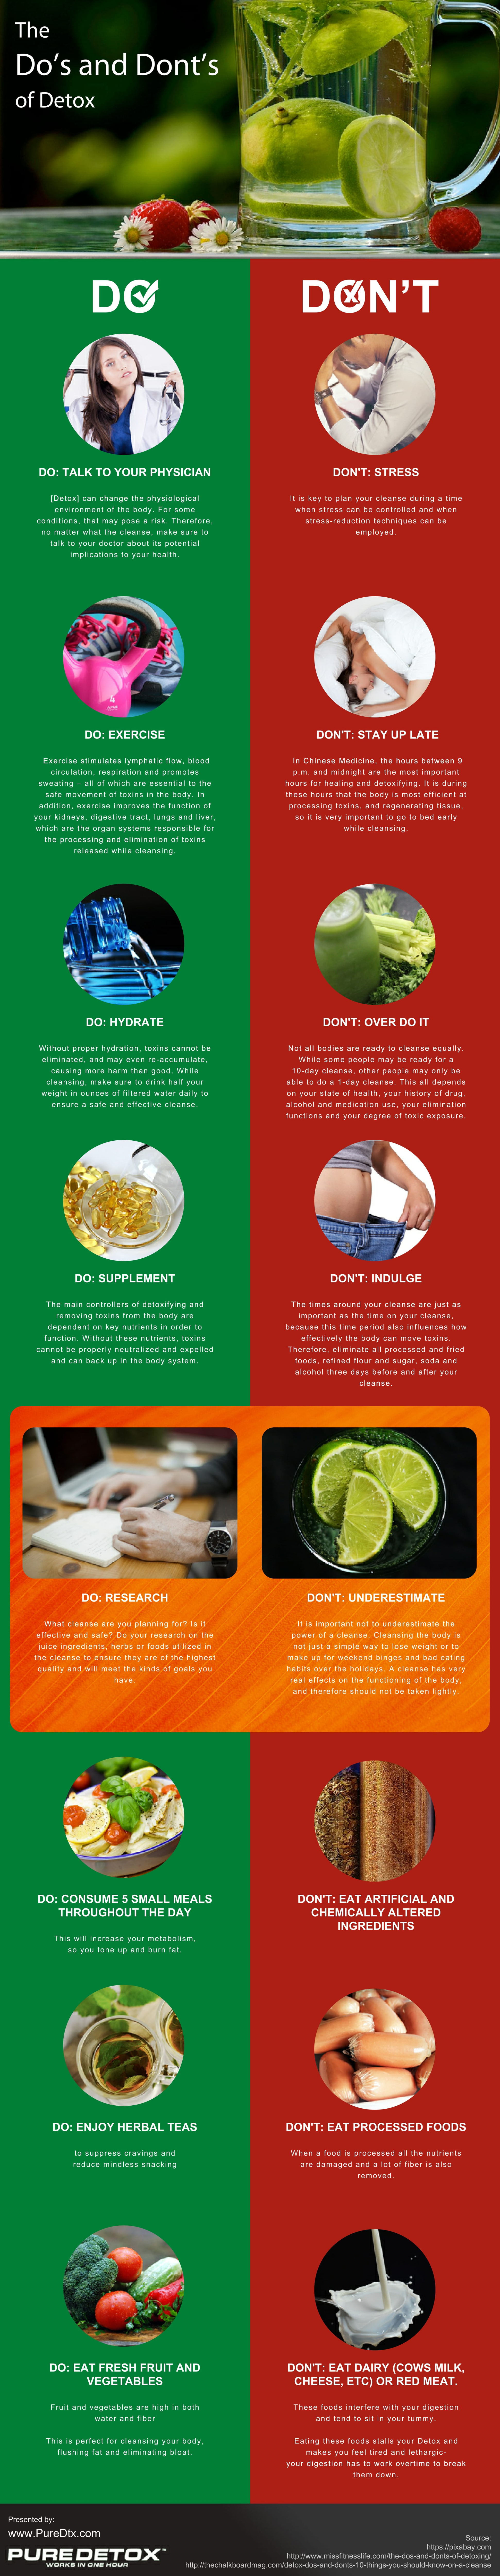 What You Should and Shouldn't Do During A Detox - Infographic